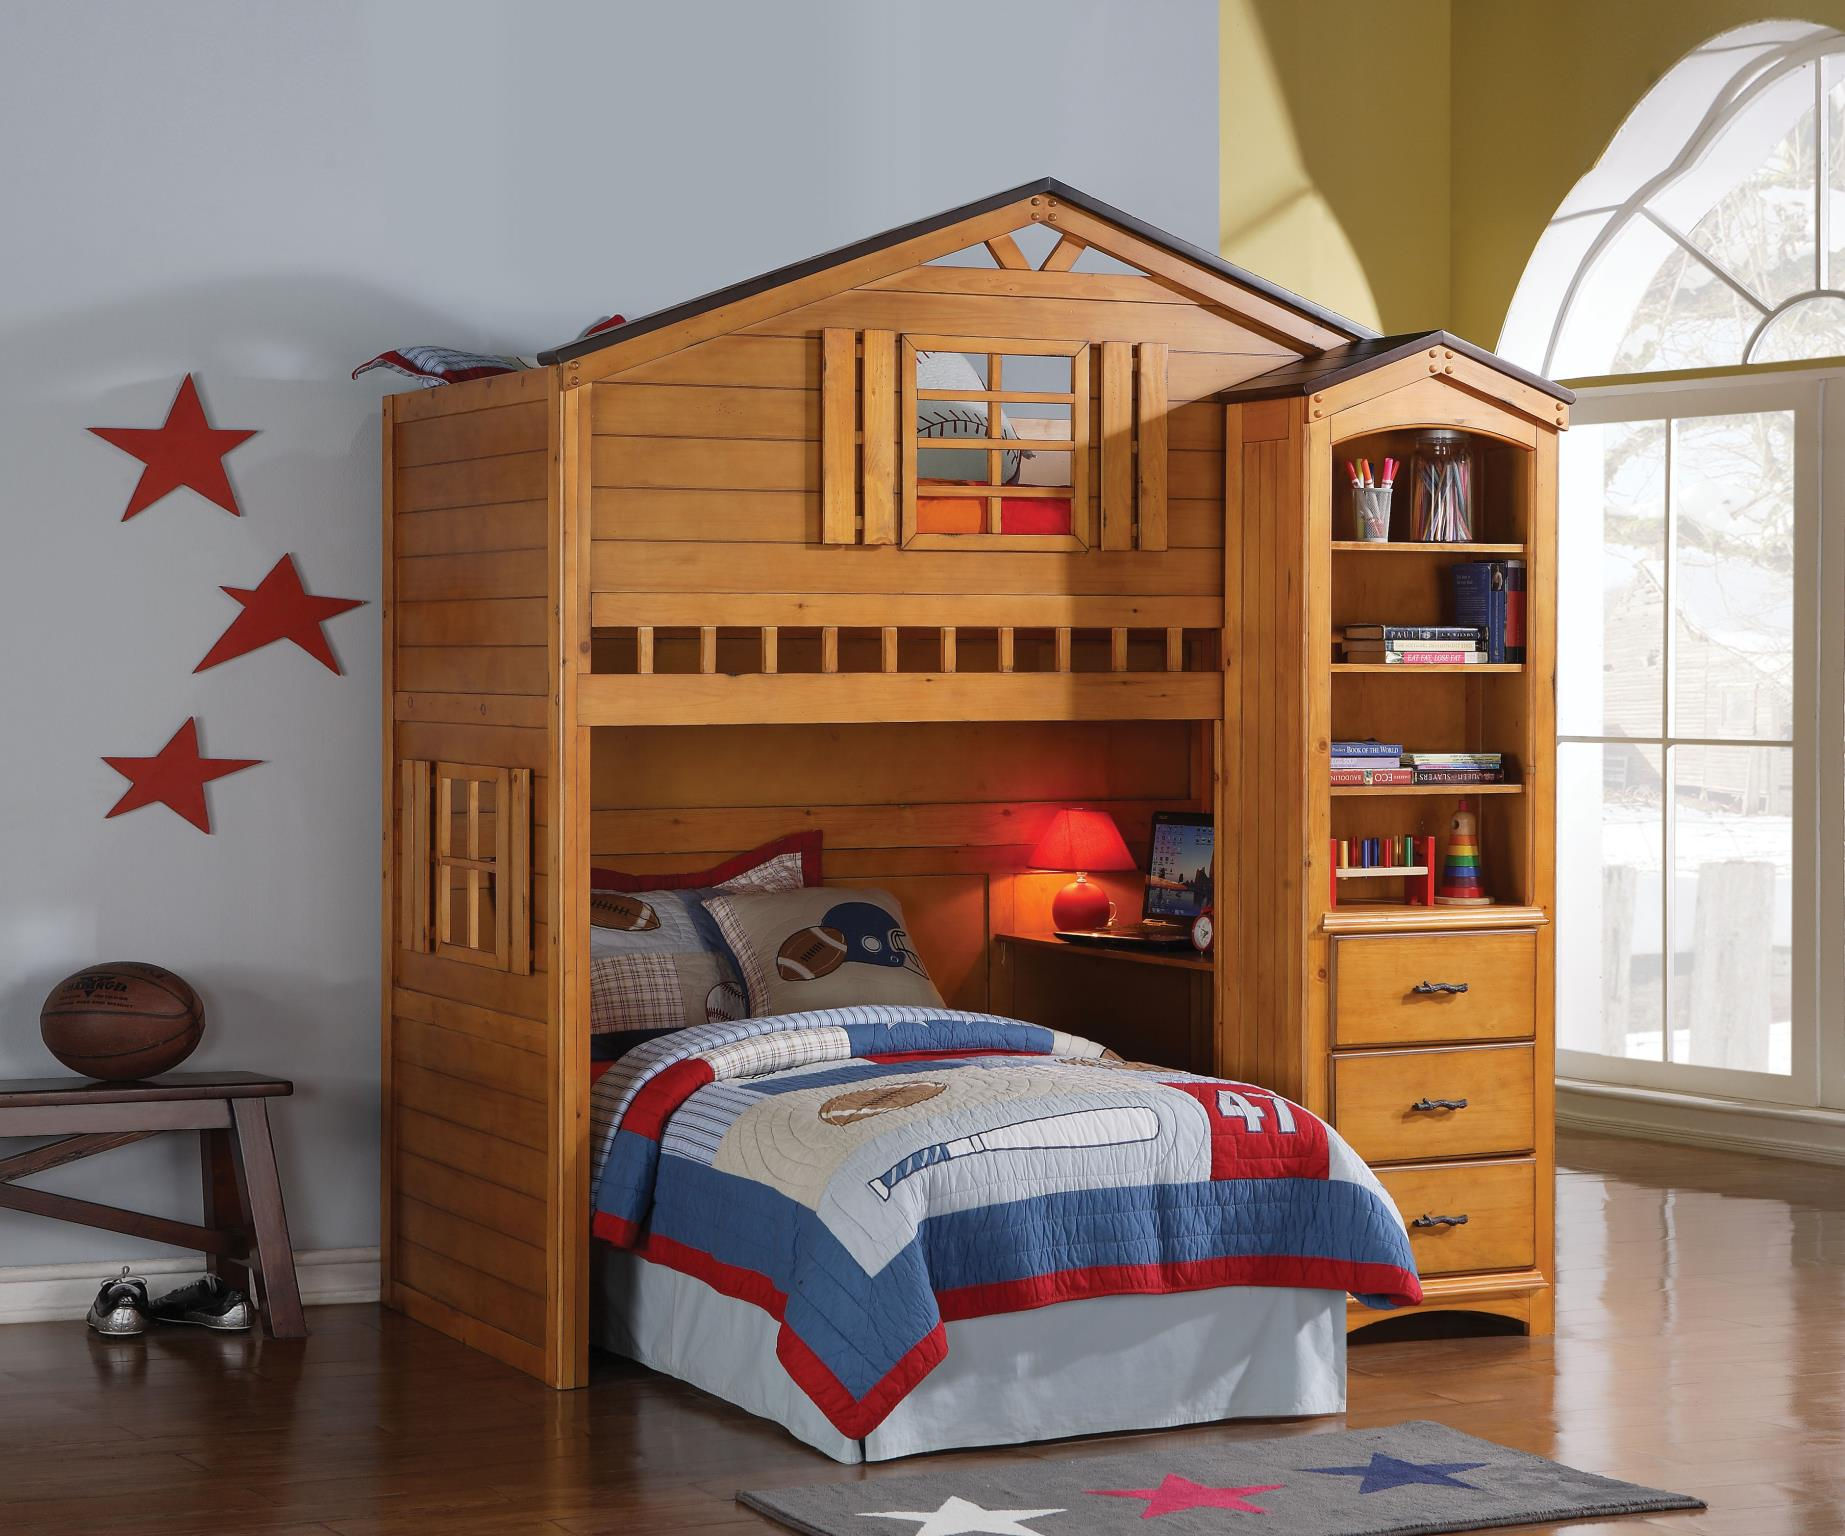 Treehouse Loft Bunk Bed